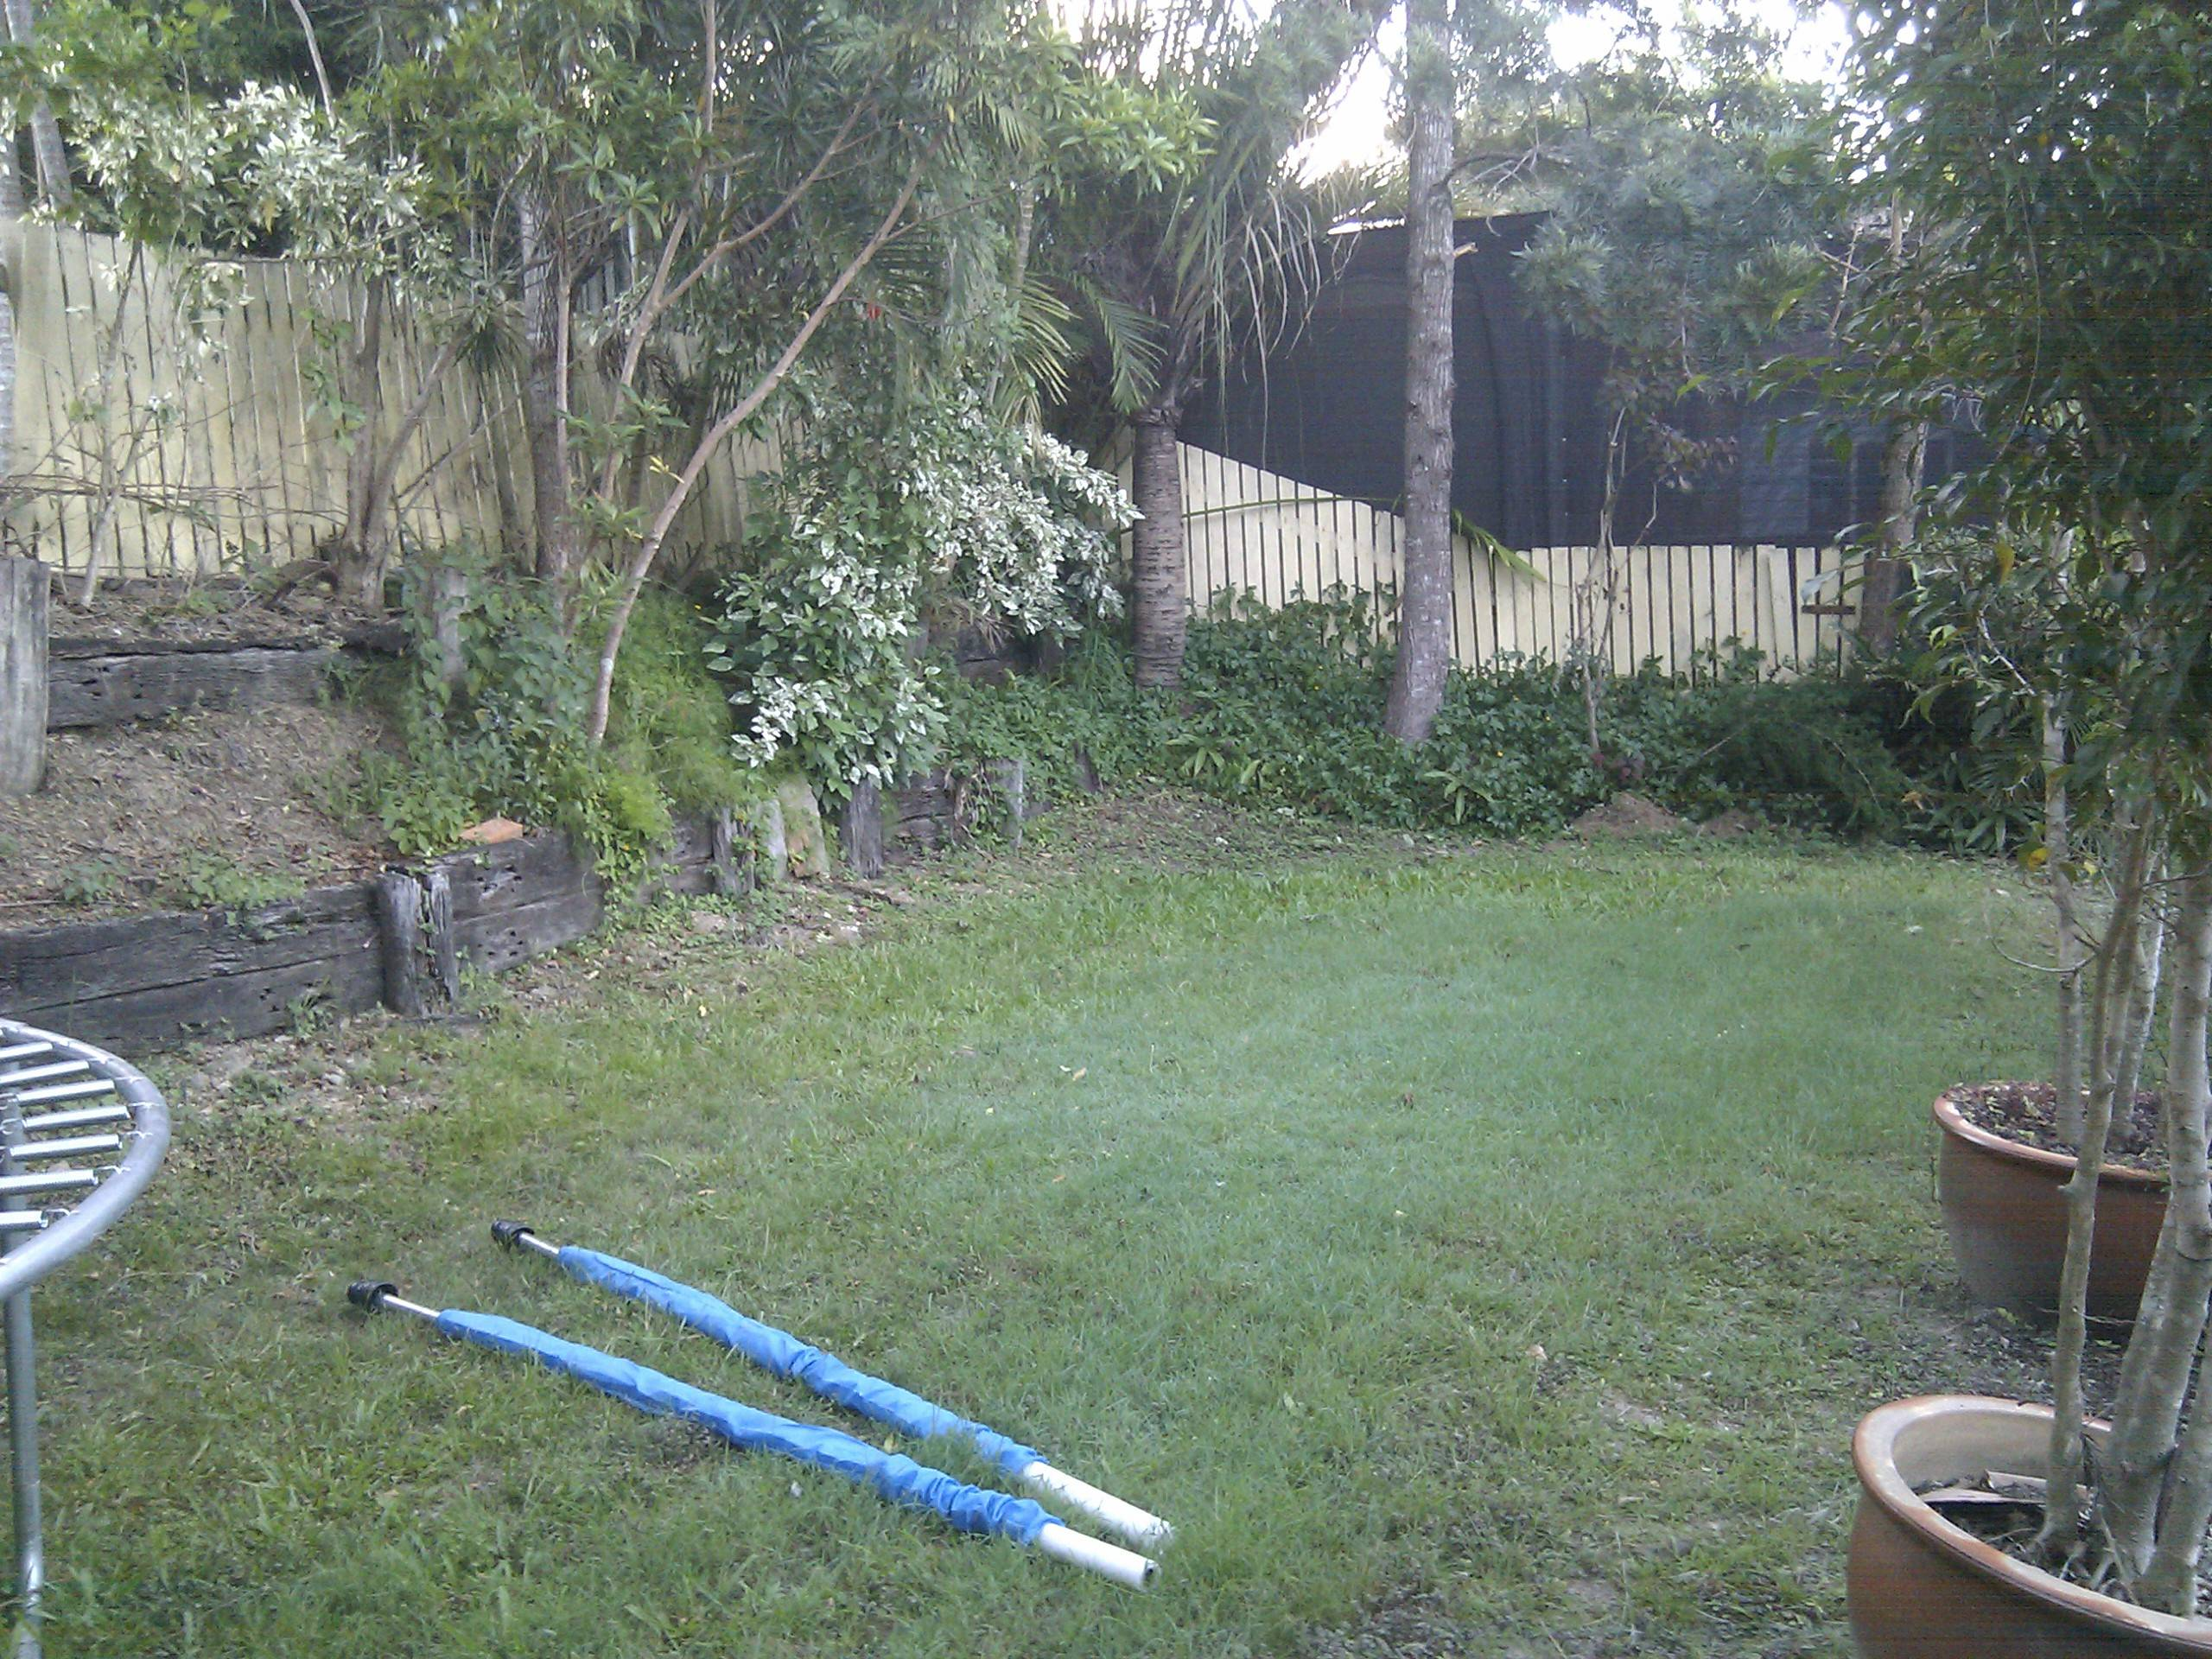 I live in Queensland Brisbane City Council area. My backyard has ...